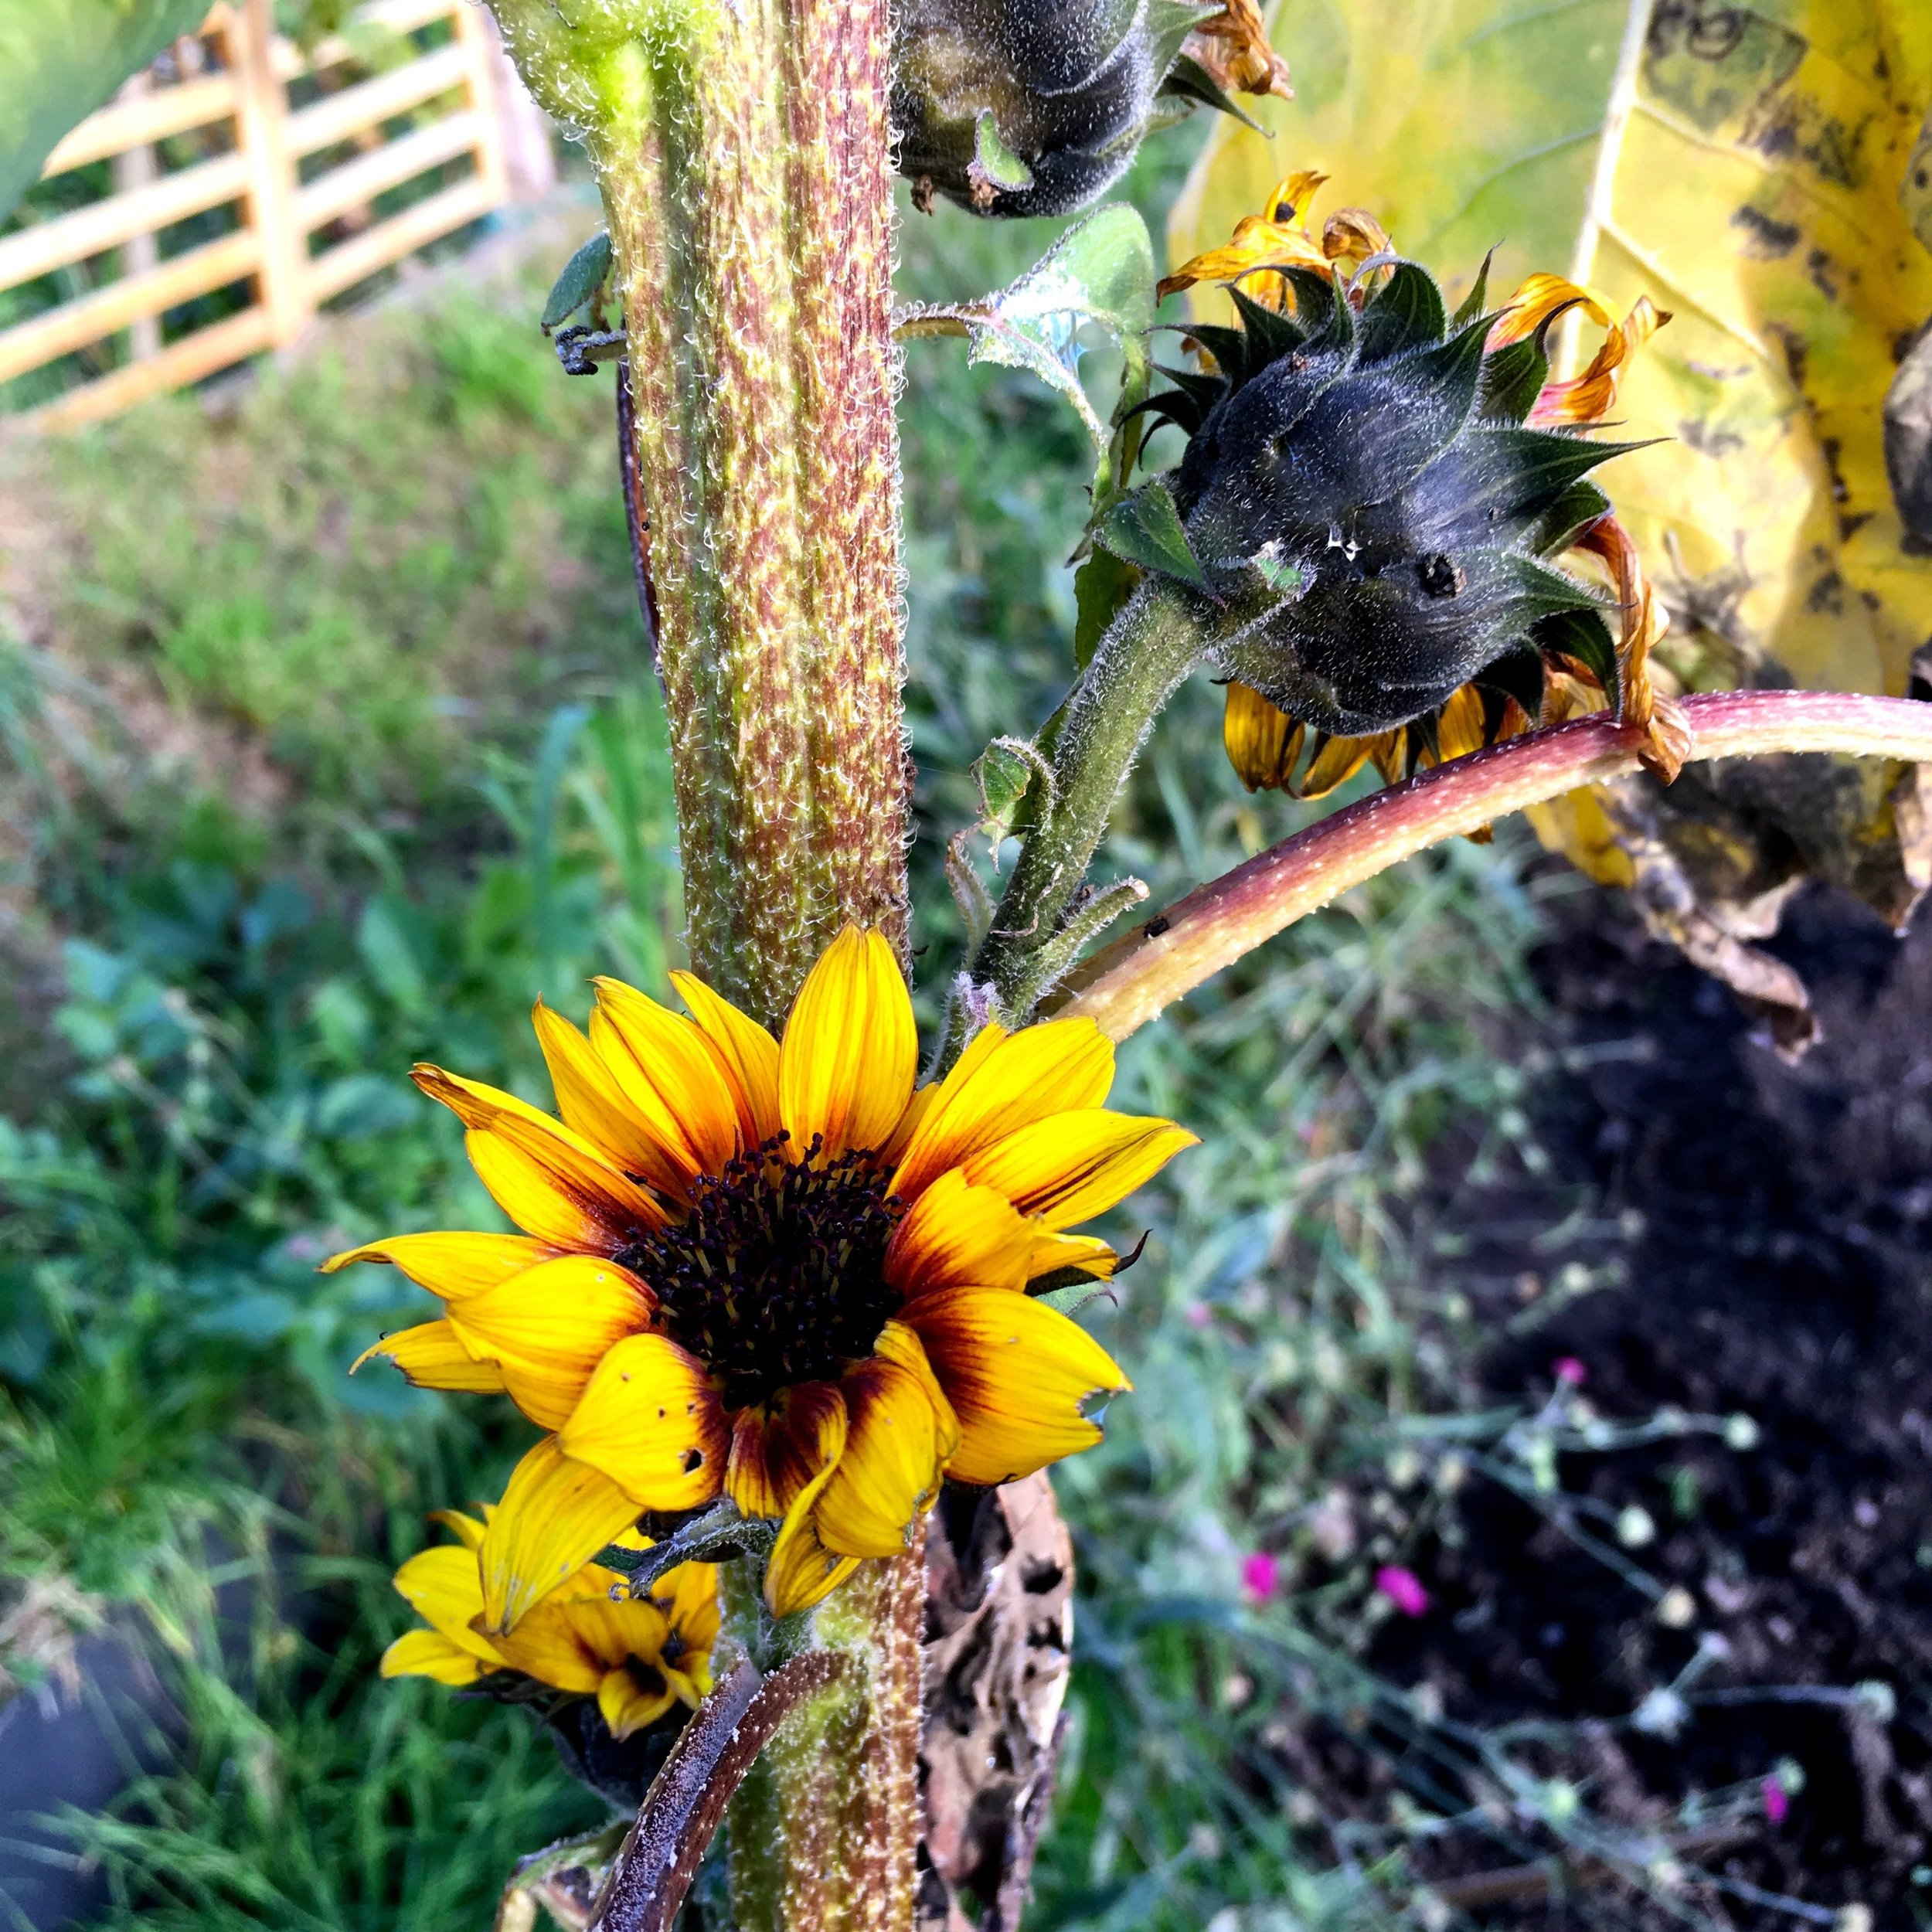 And still tiny sunflowers on a very thick stem